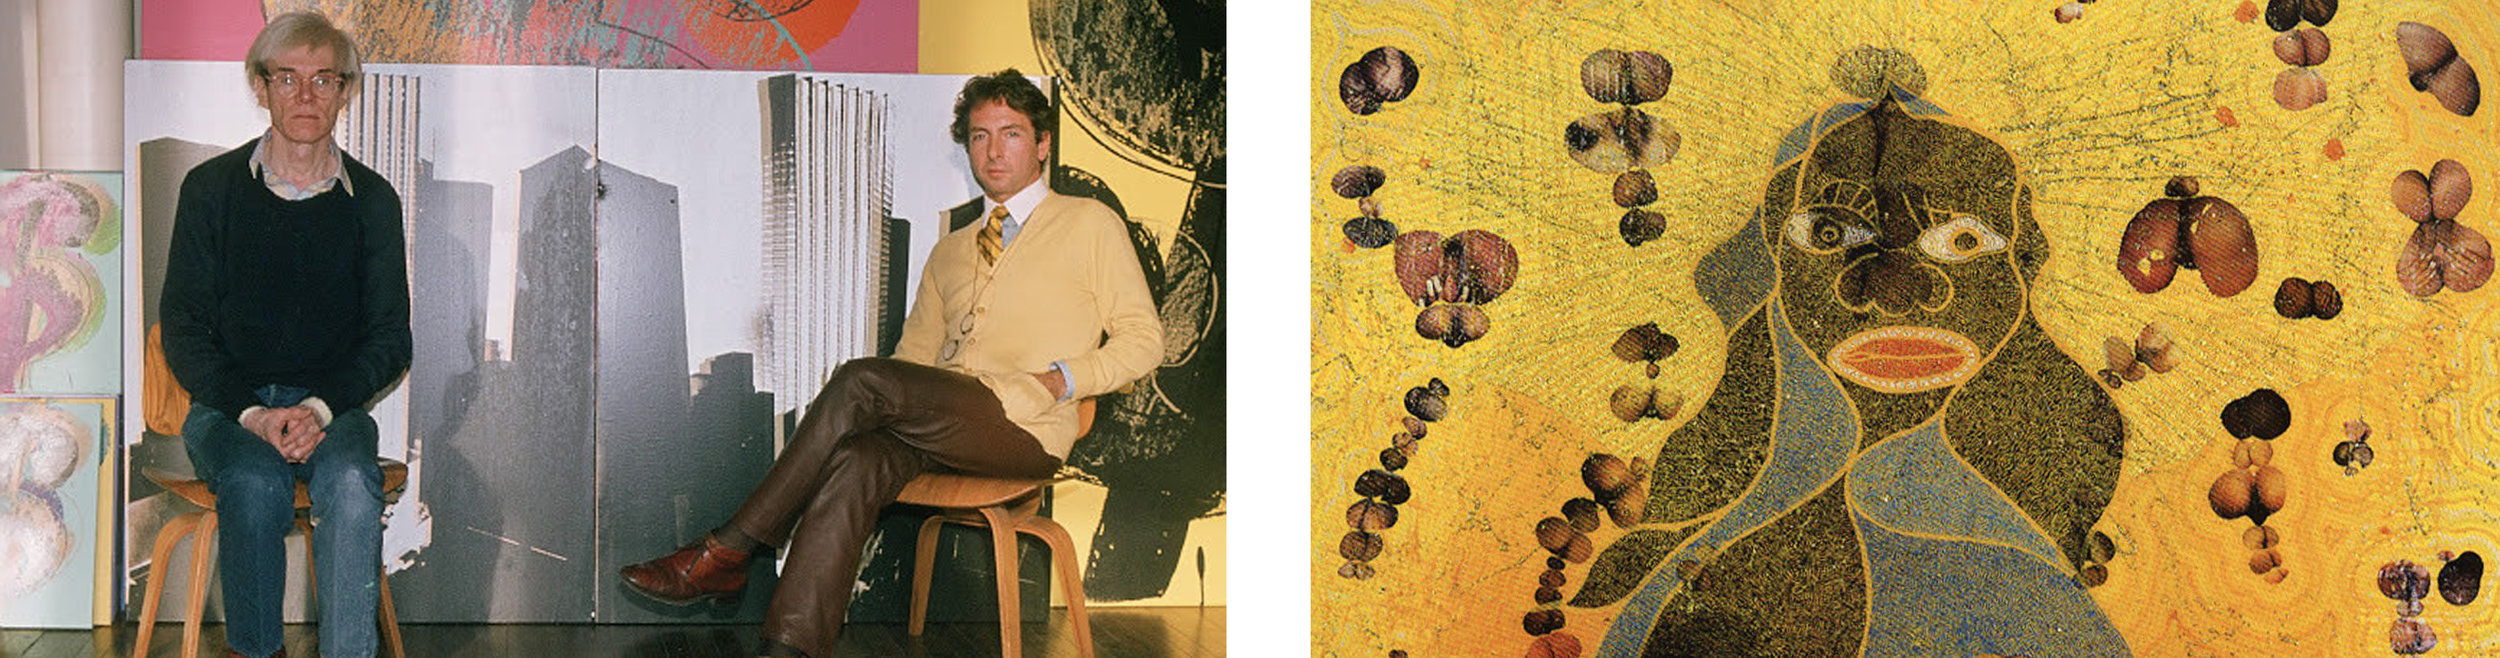 Andy Warhol's paintings for Trump Tower and Chris Ofili's The Holy Virgin Mary (detail)